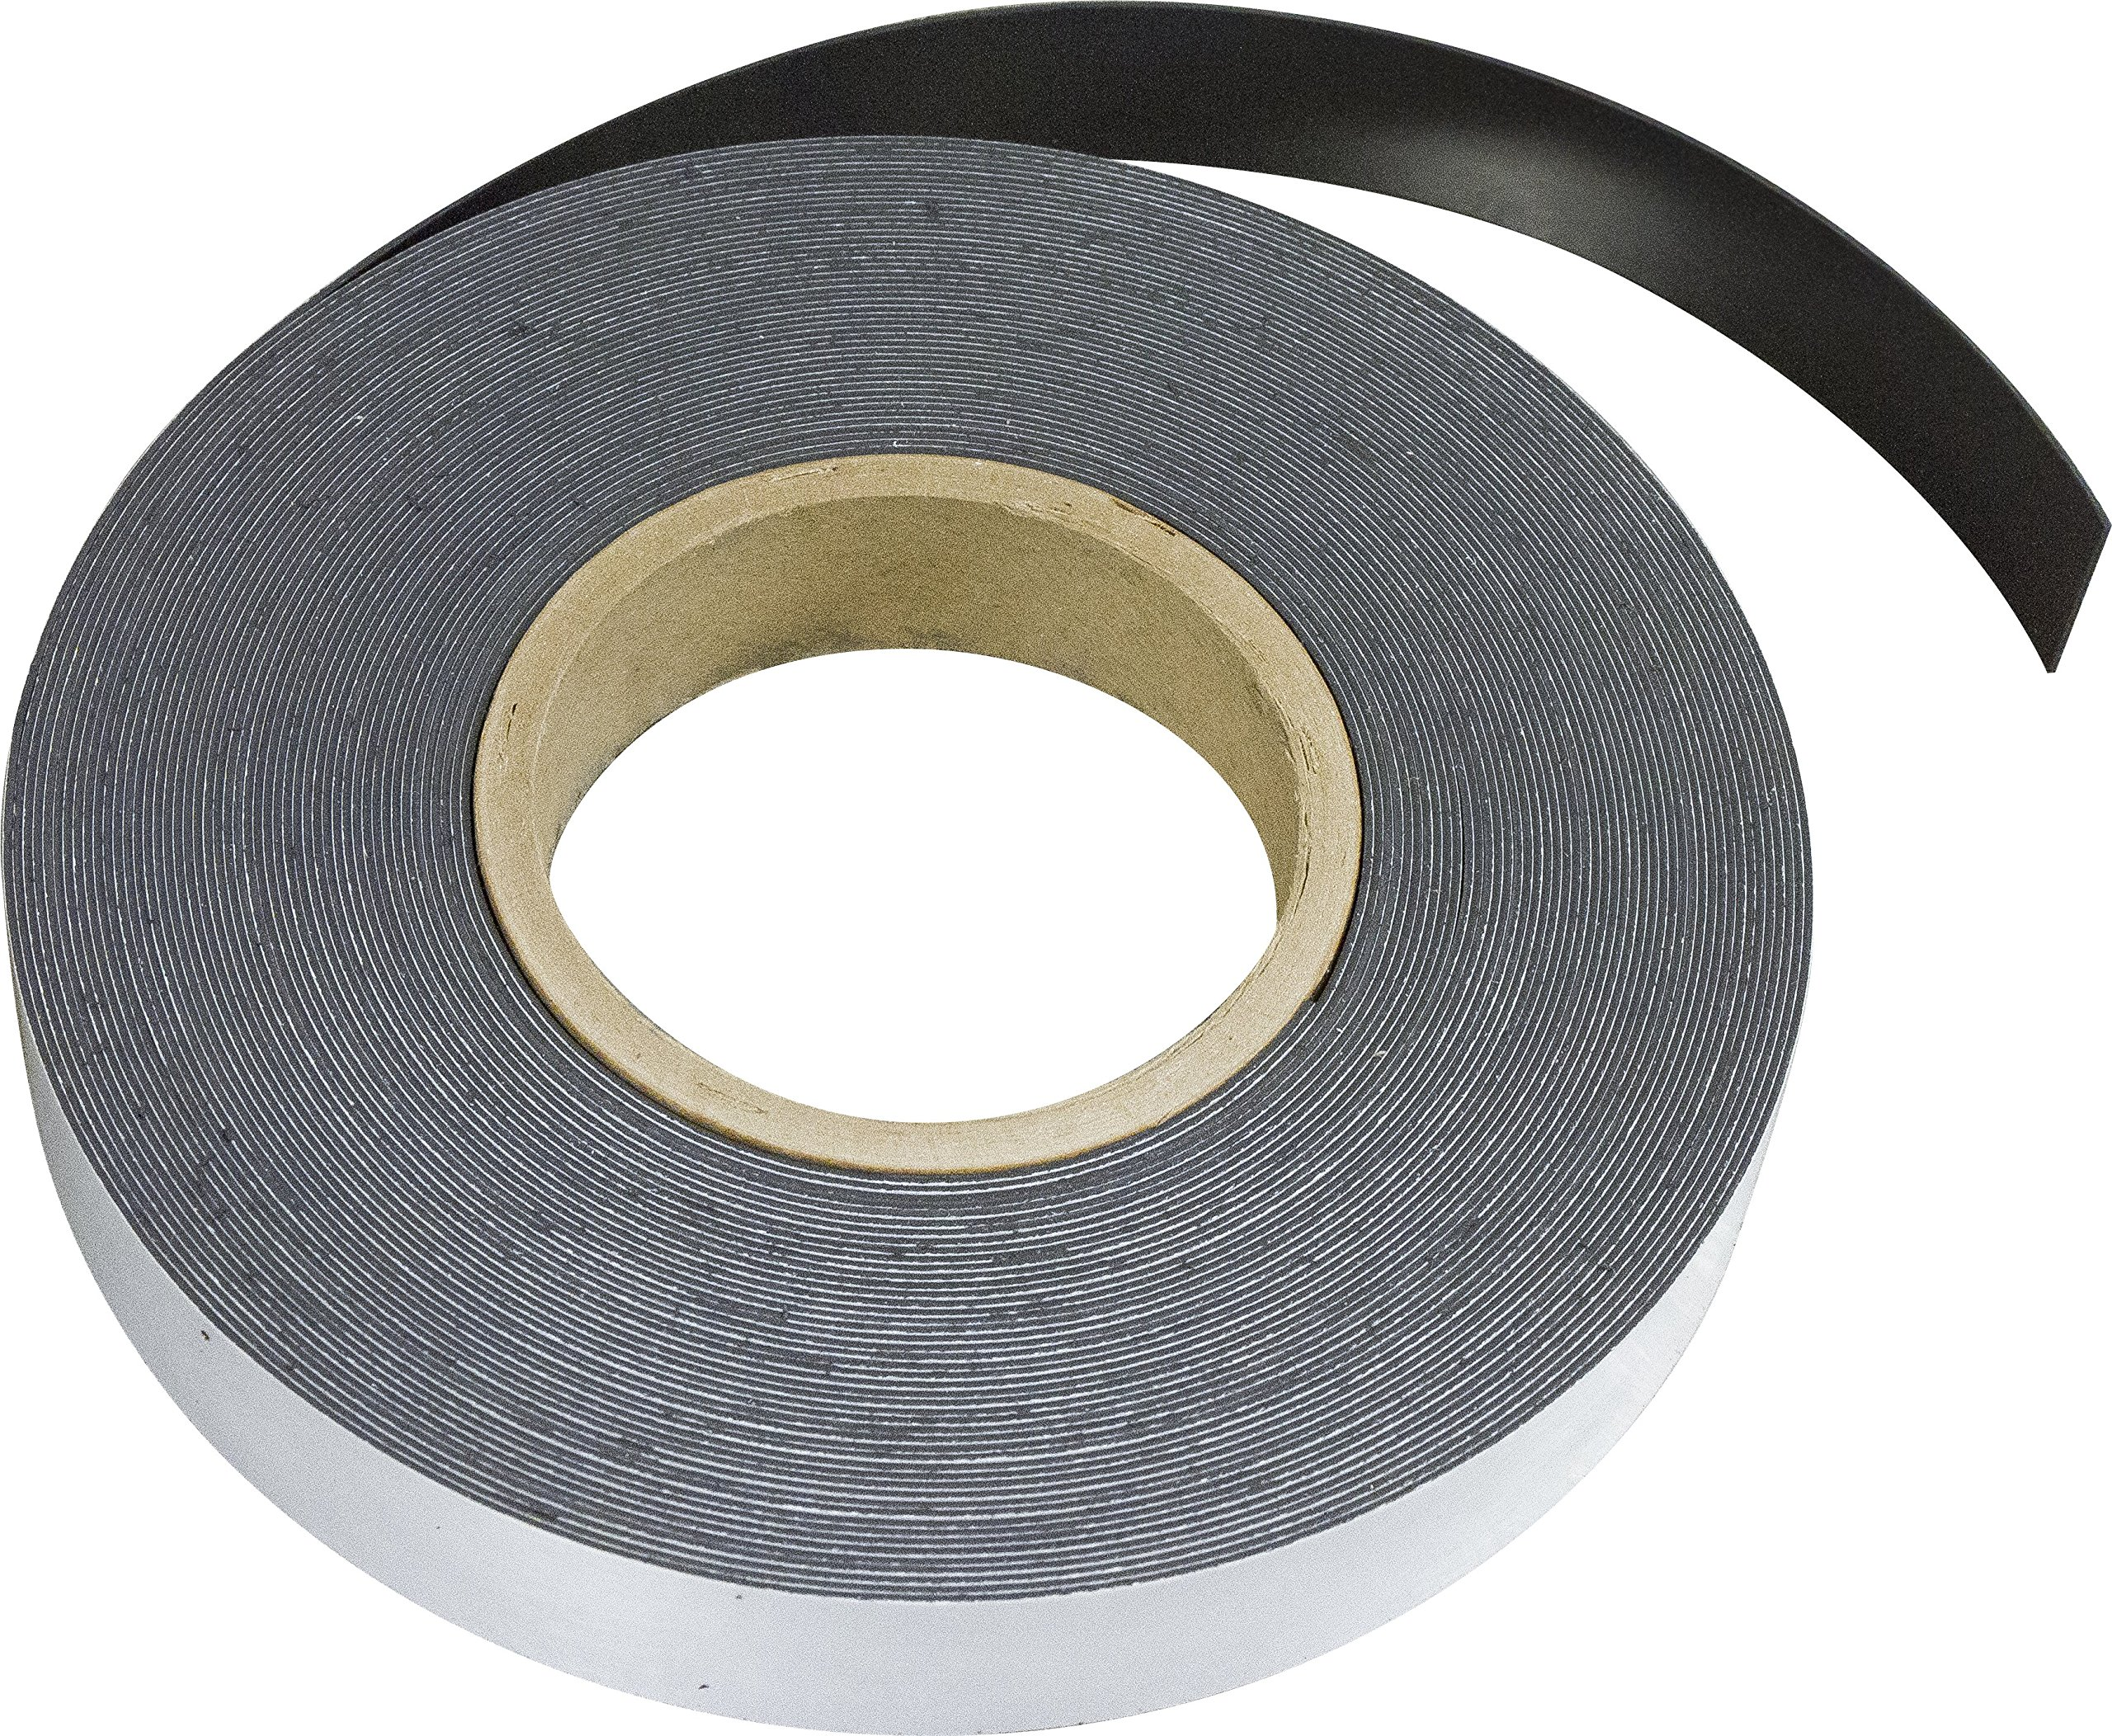 MAG-MATE MRA060X0100X050 Flexible Magnet Material with Adhesive, 0.060 x 1 x 50'